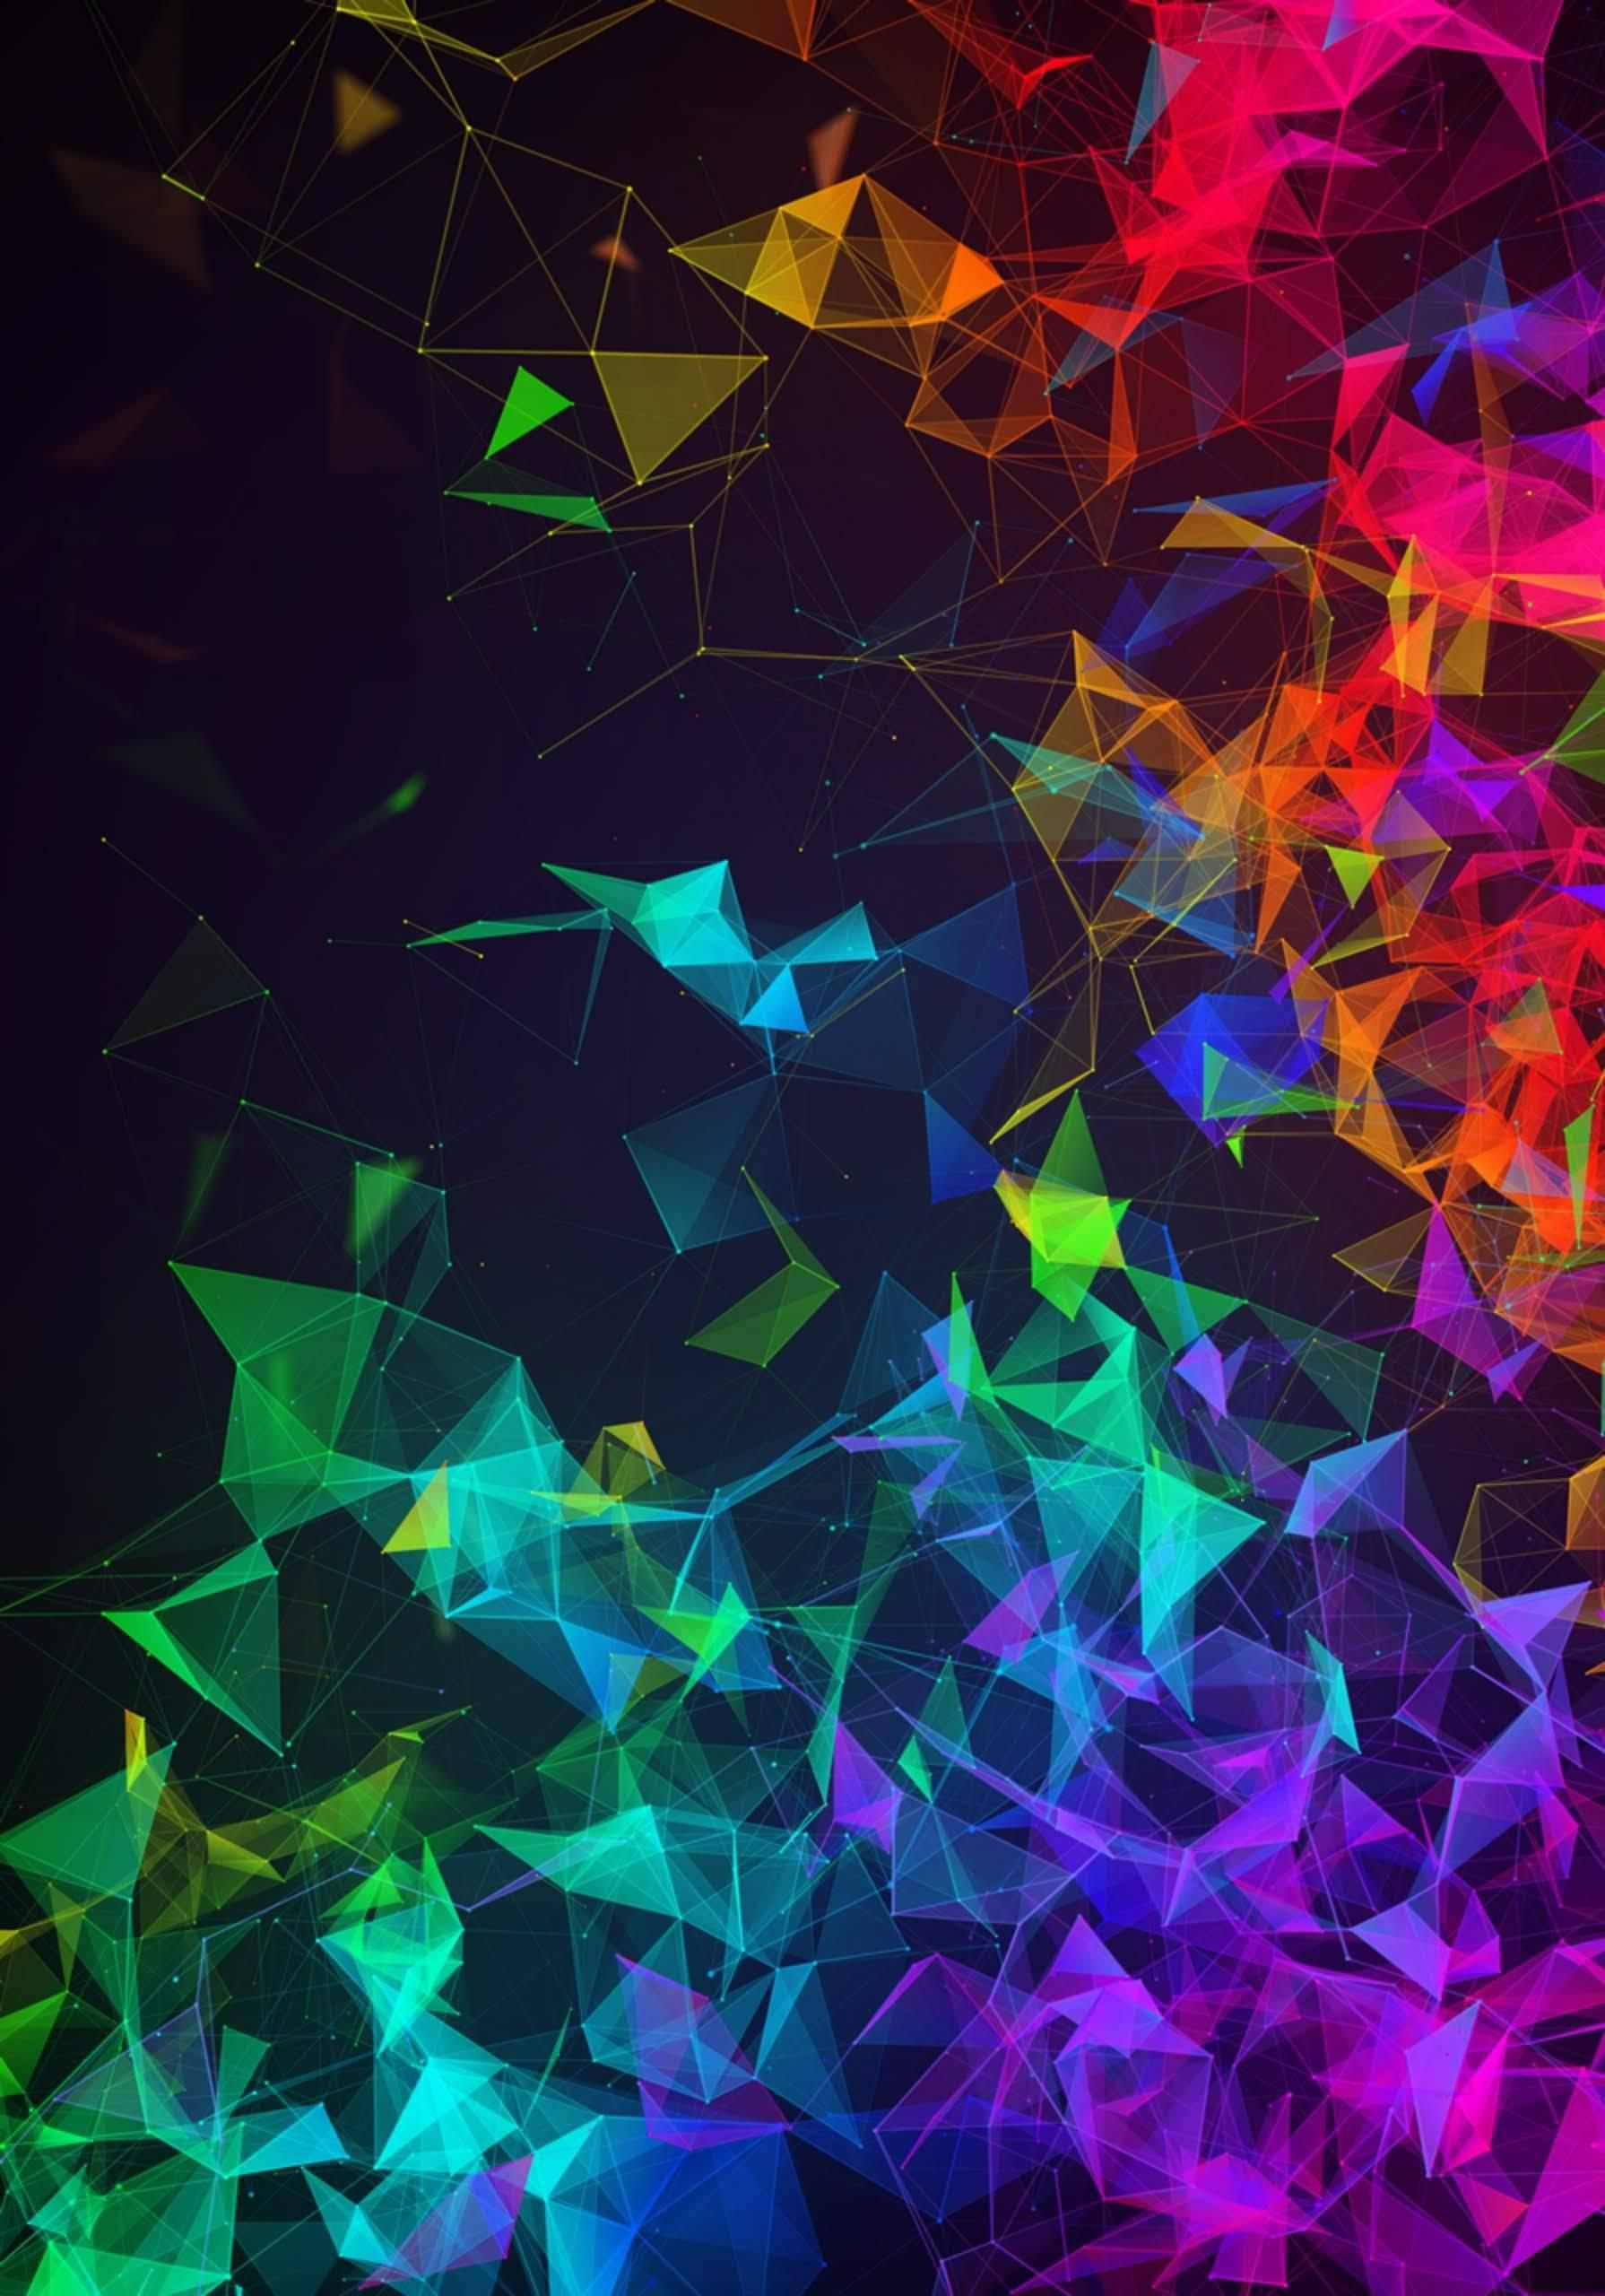 Razer Prism Wallpaper 1790x2560 In 2020 Cool Backgrounds Wallpapers Iphone Wallpaper Wallpaper Space